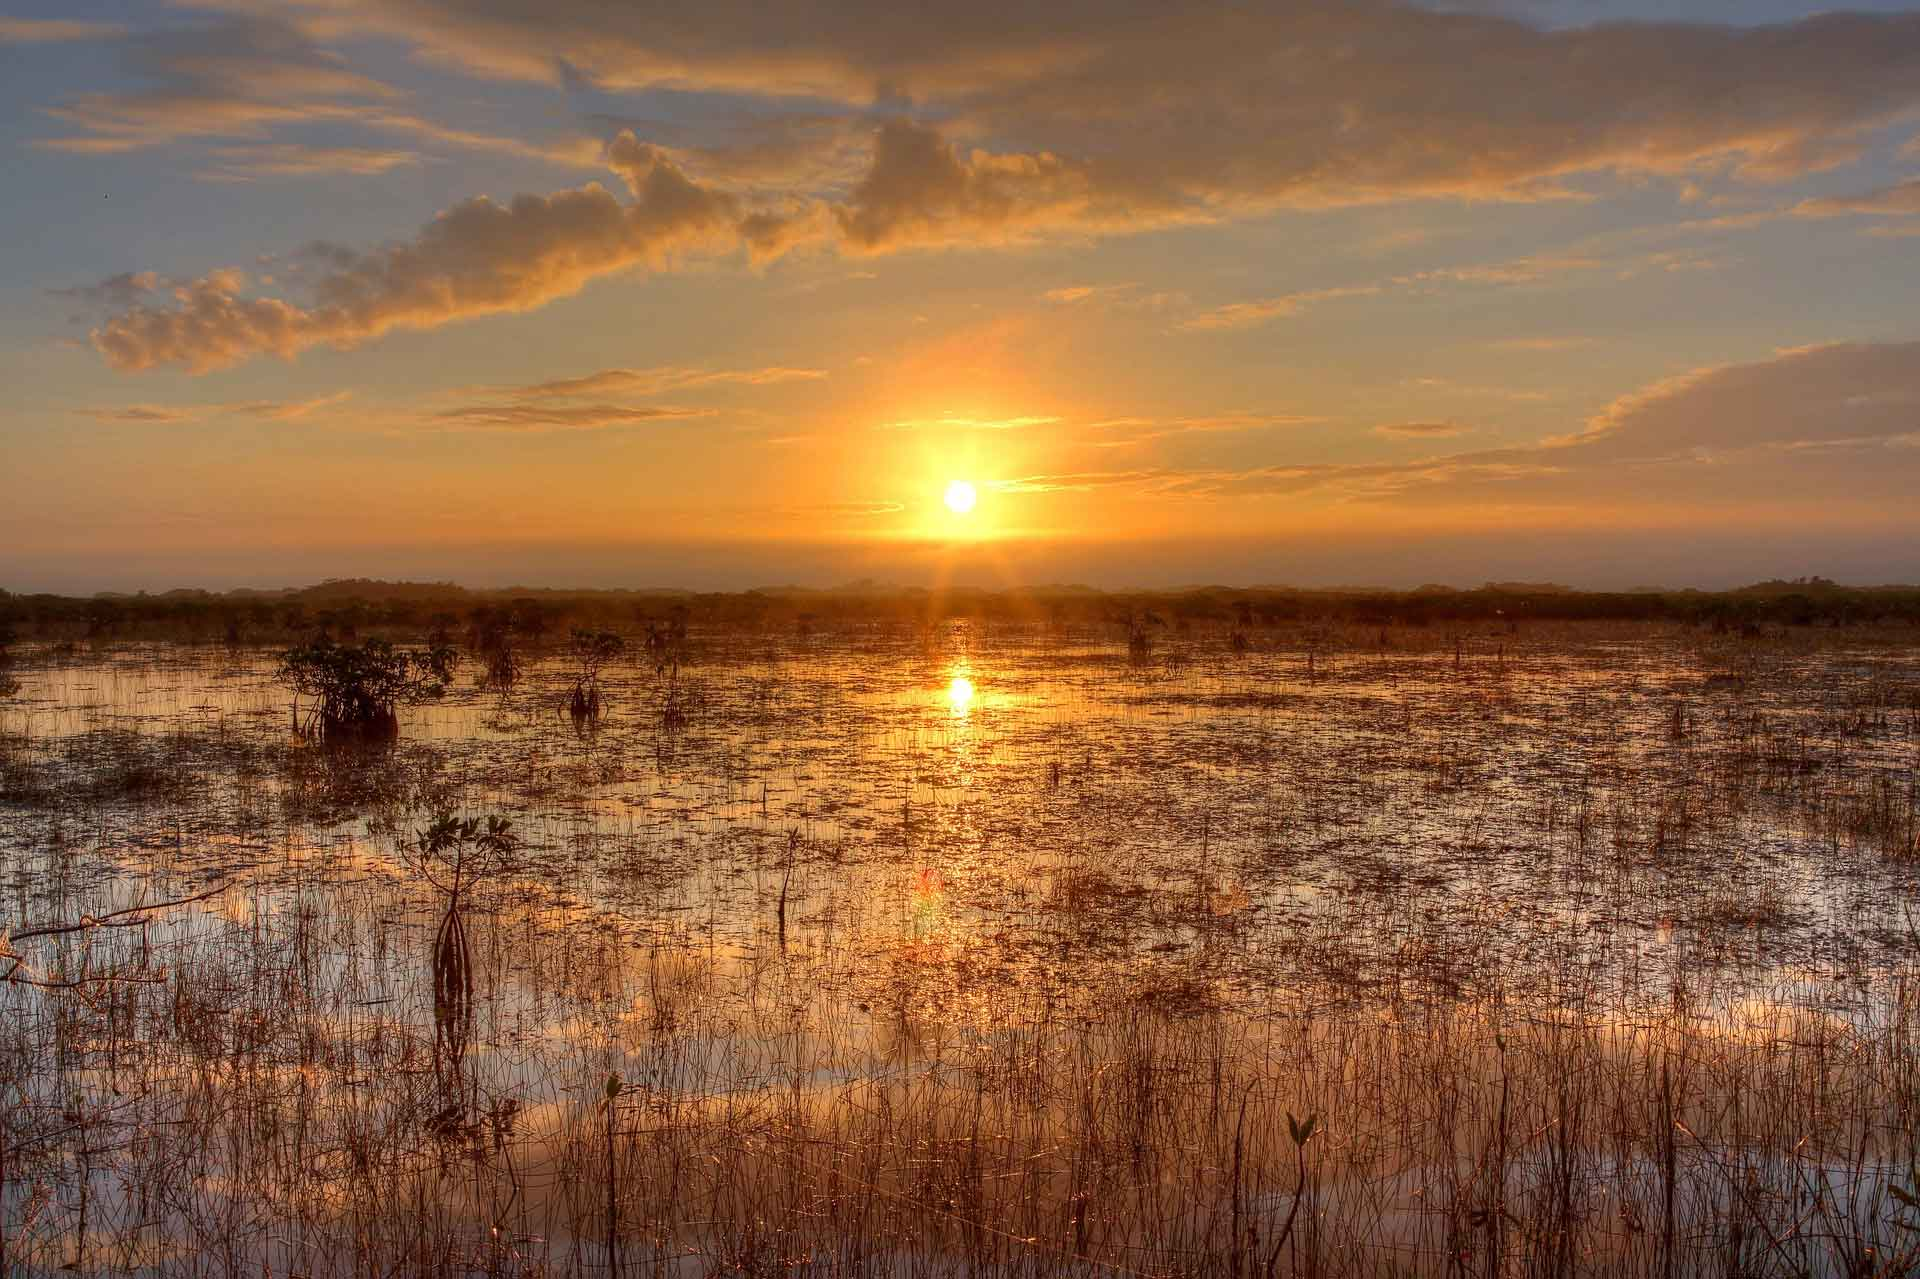 landscape image of the sunset in the everglades.